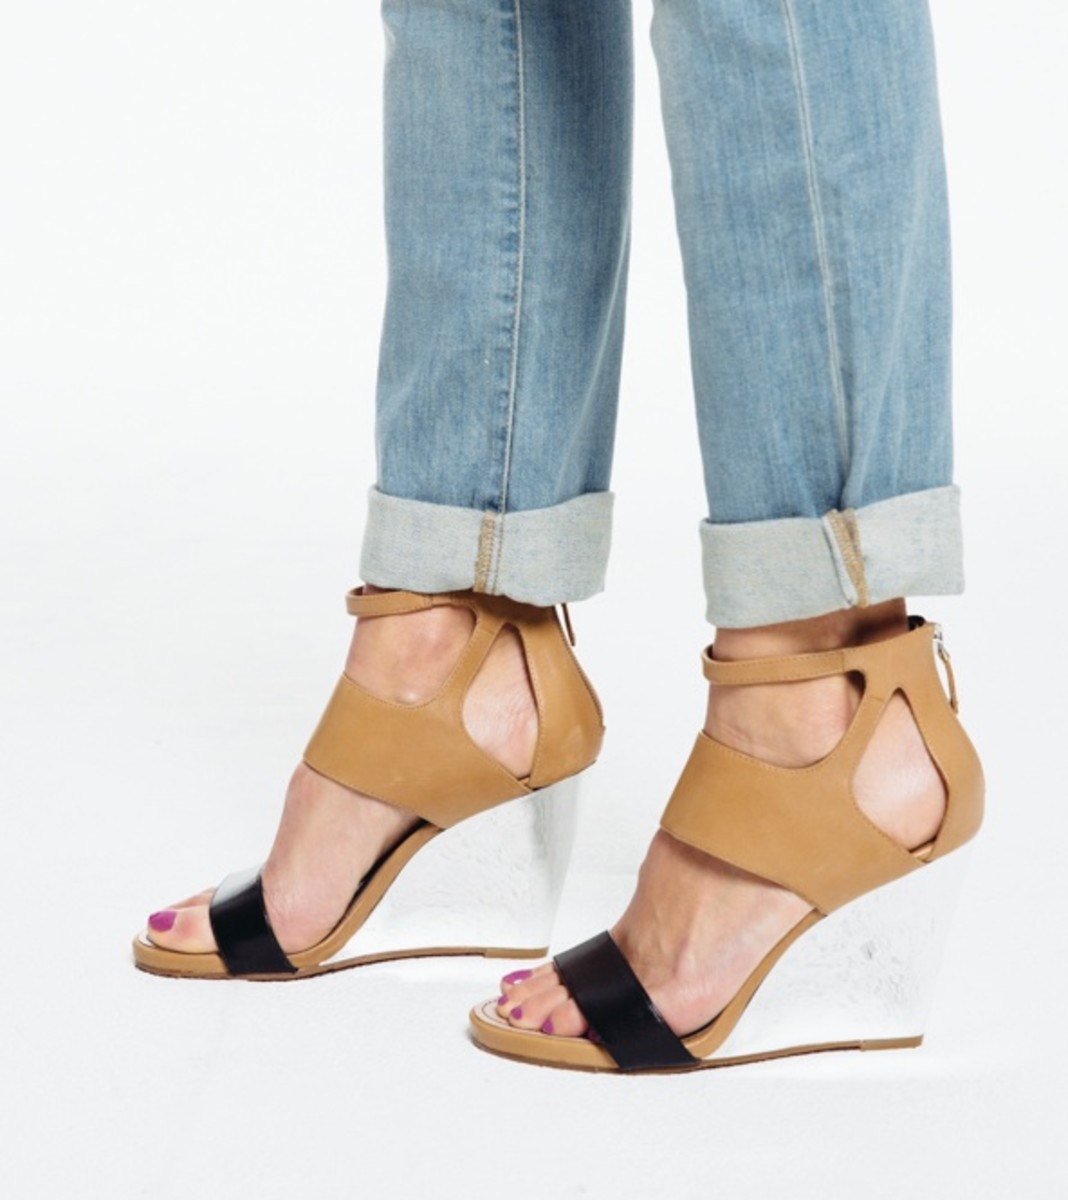 DKNY metallic wedge